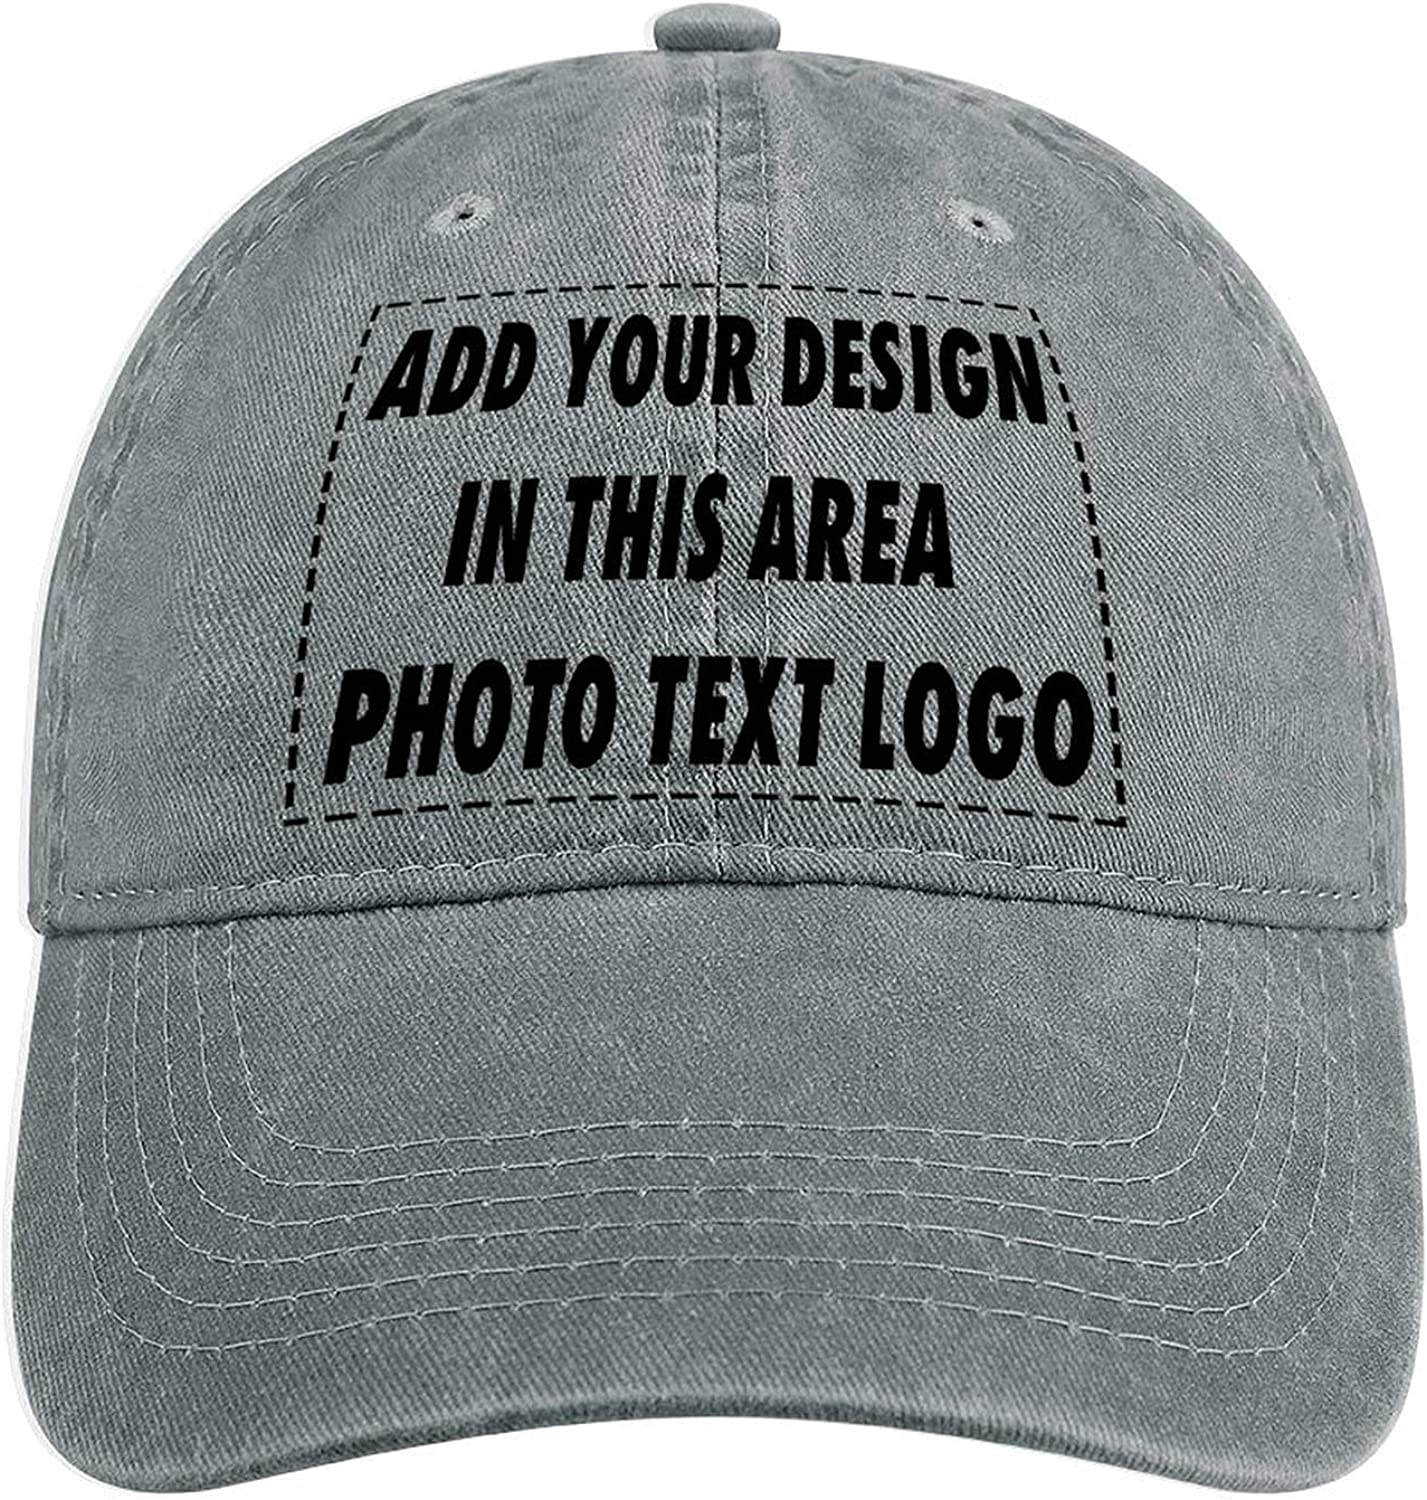 Unisex Custom Cowboy Hat Dad Baseball Caps Add Your Photo Text Logo Personalized Design Your Own Hat